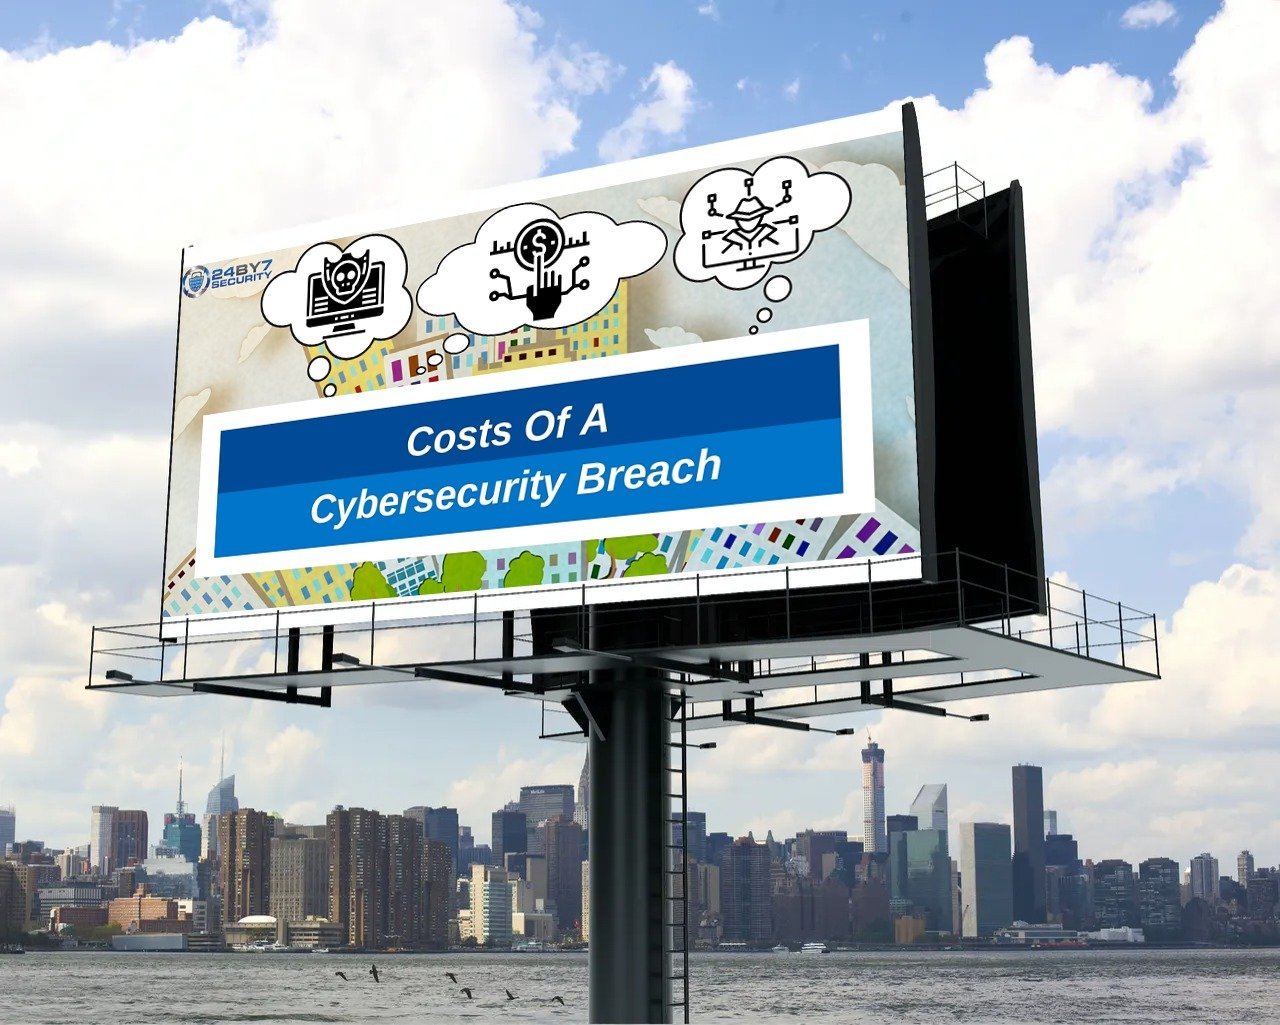 smartmockup-cost of cybersecurity breach 2020